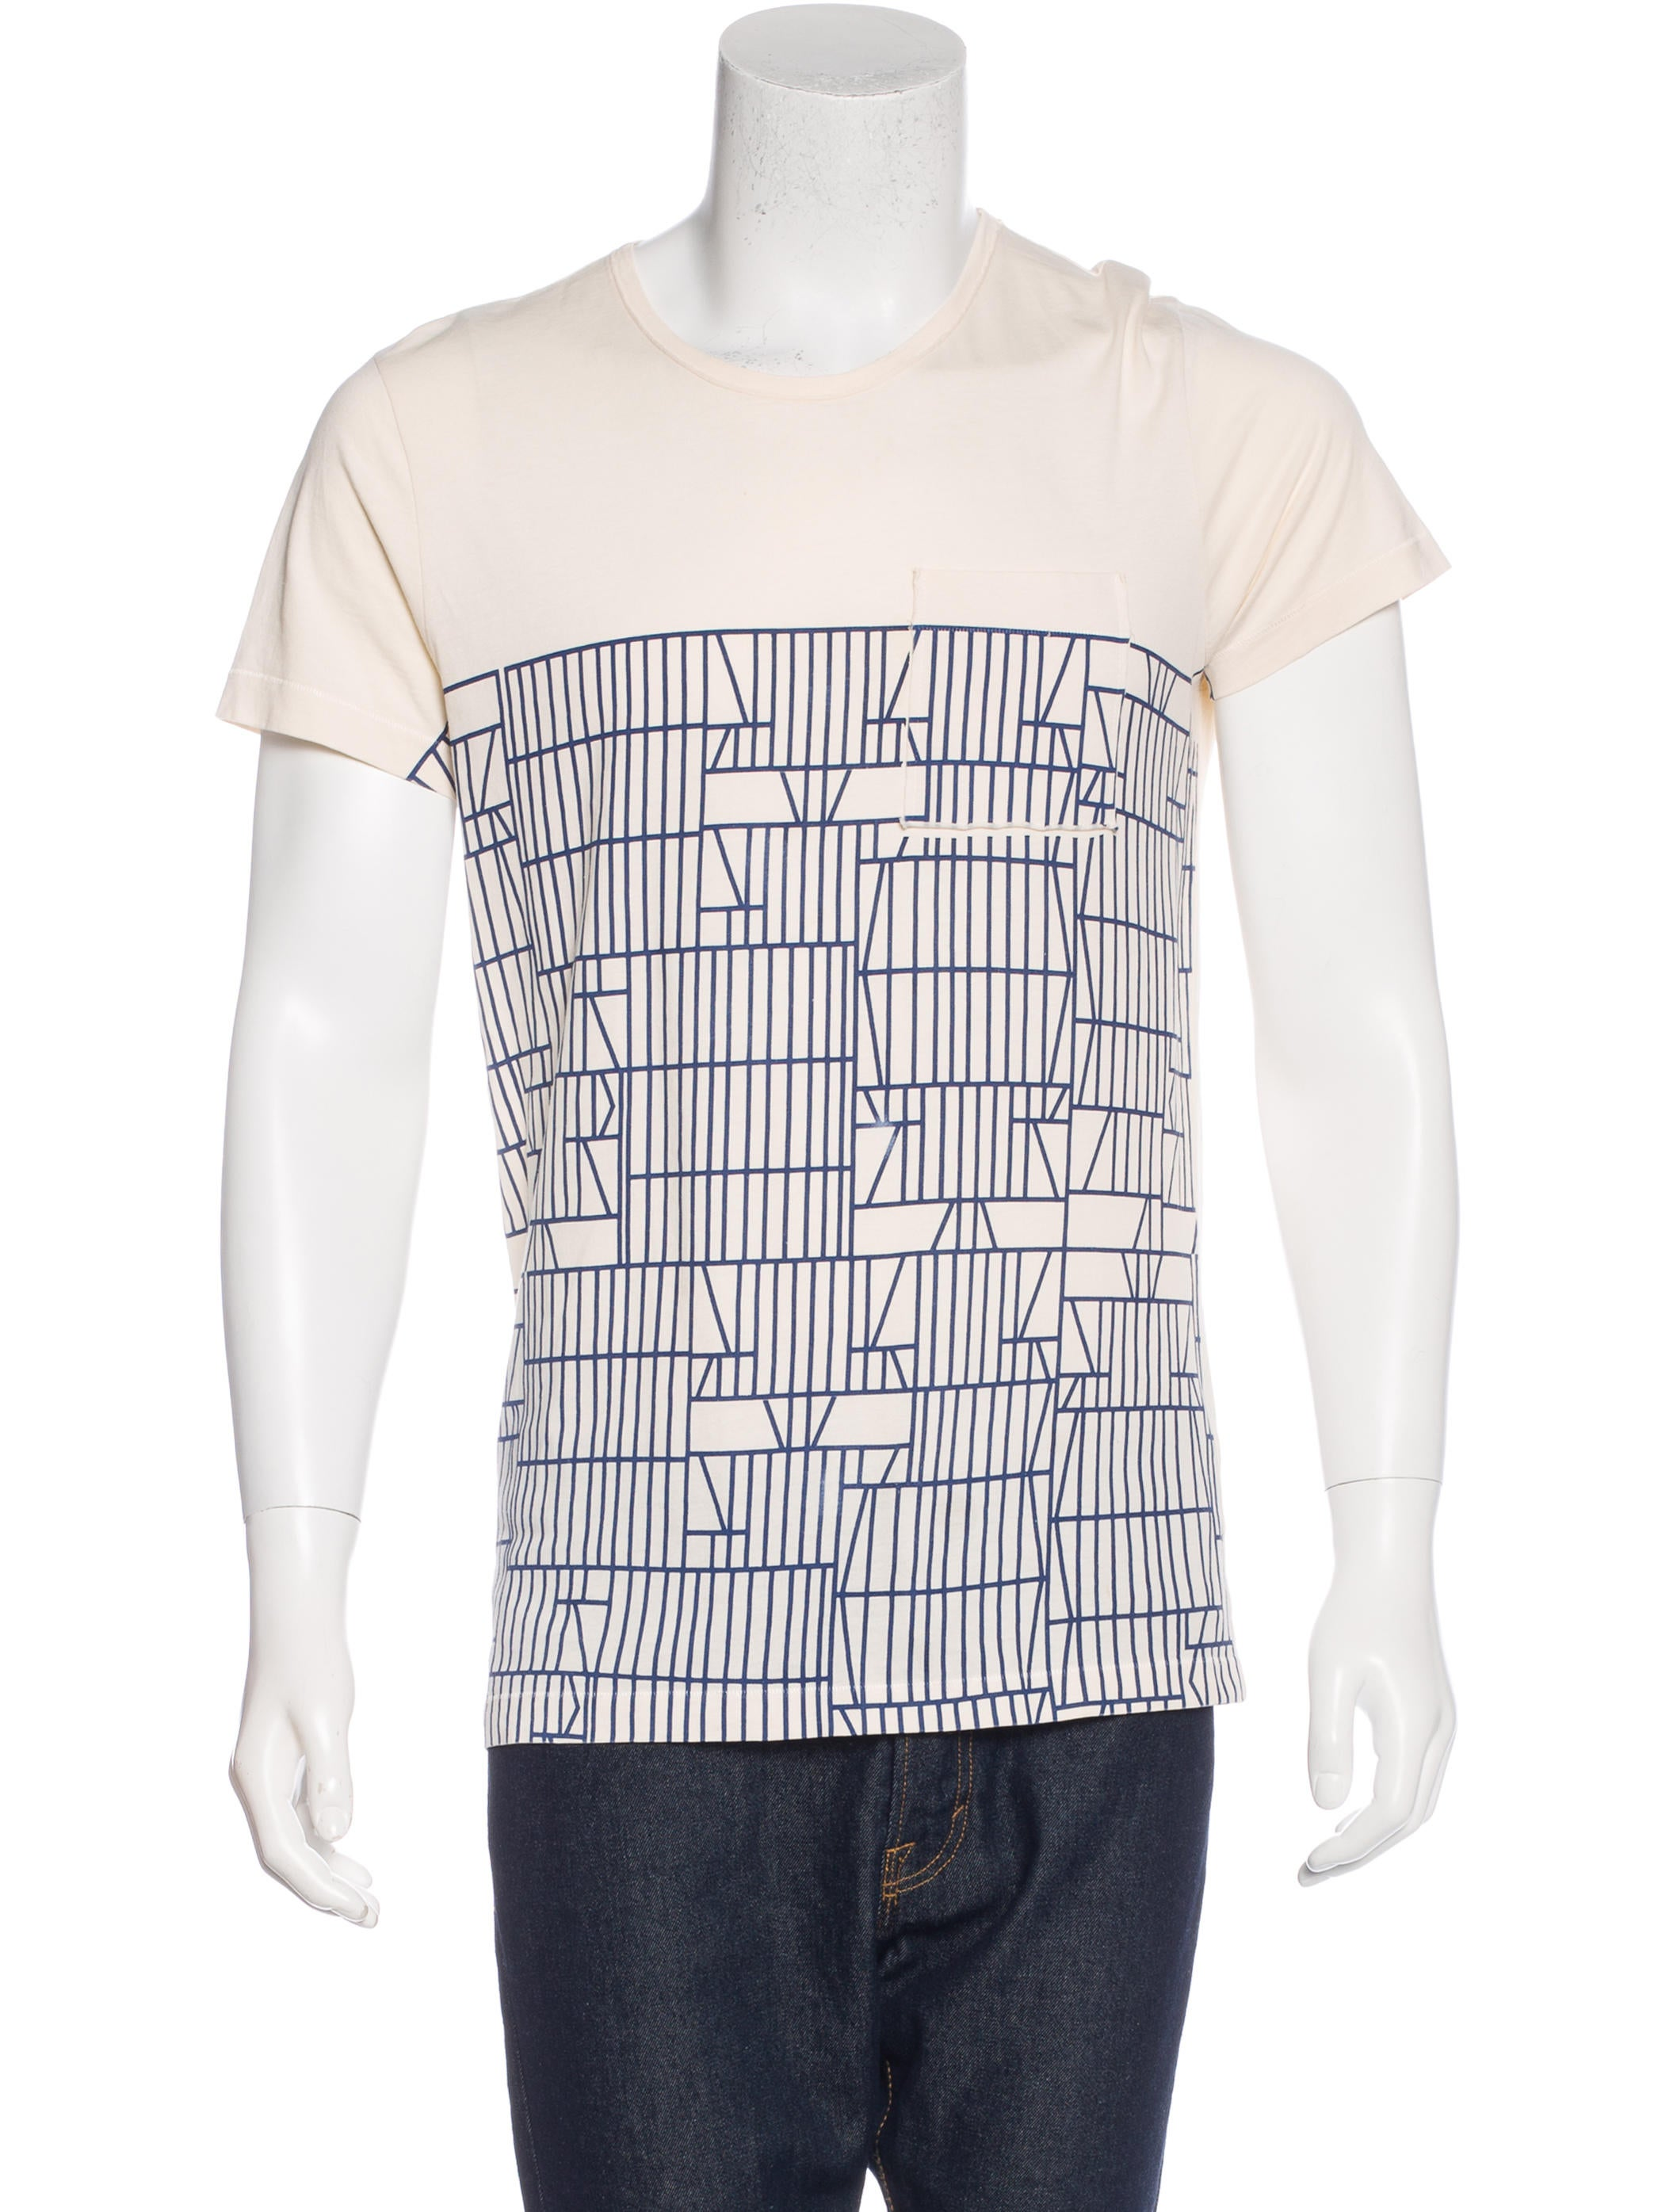 Bottega veneta geometric print t shirt clothing for Bottega veneta t shirt